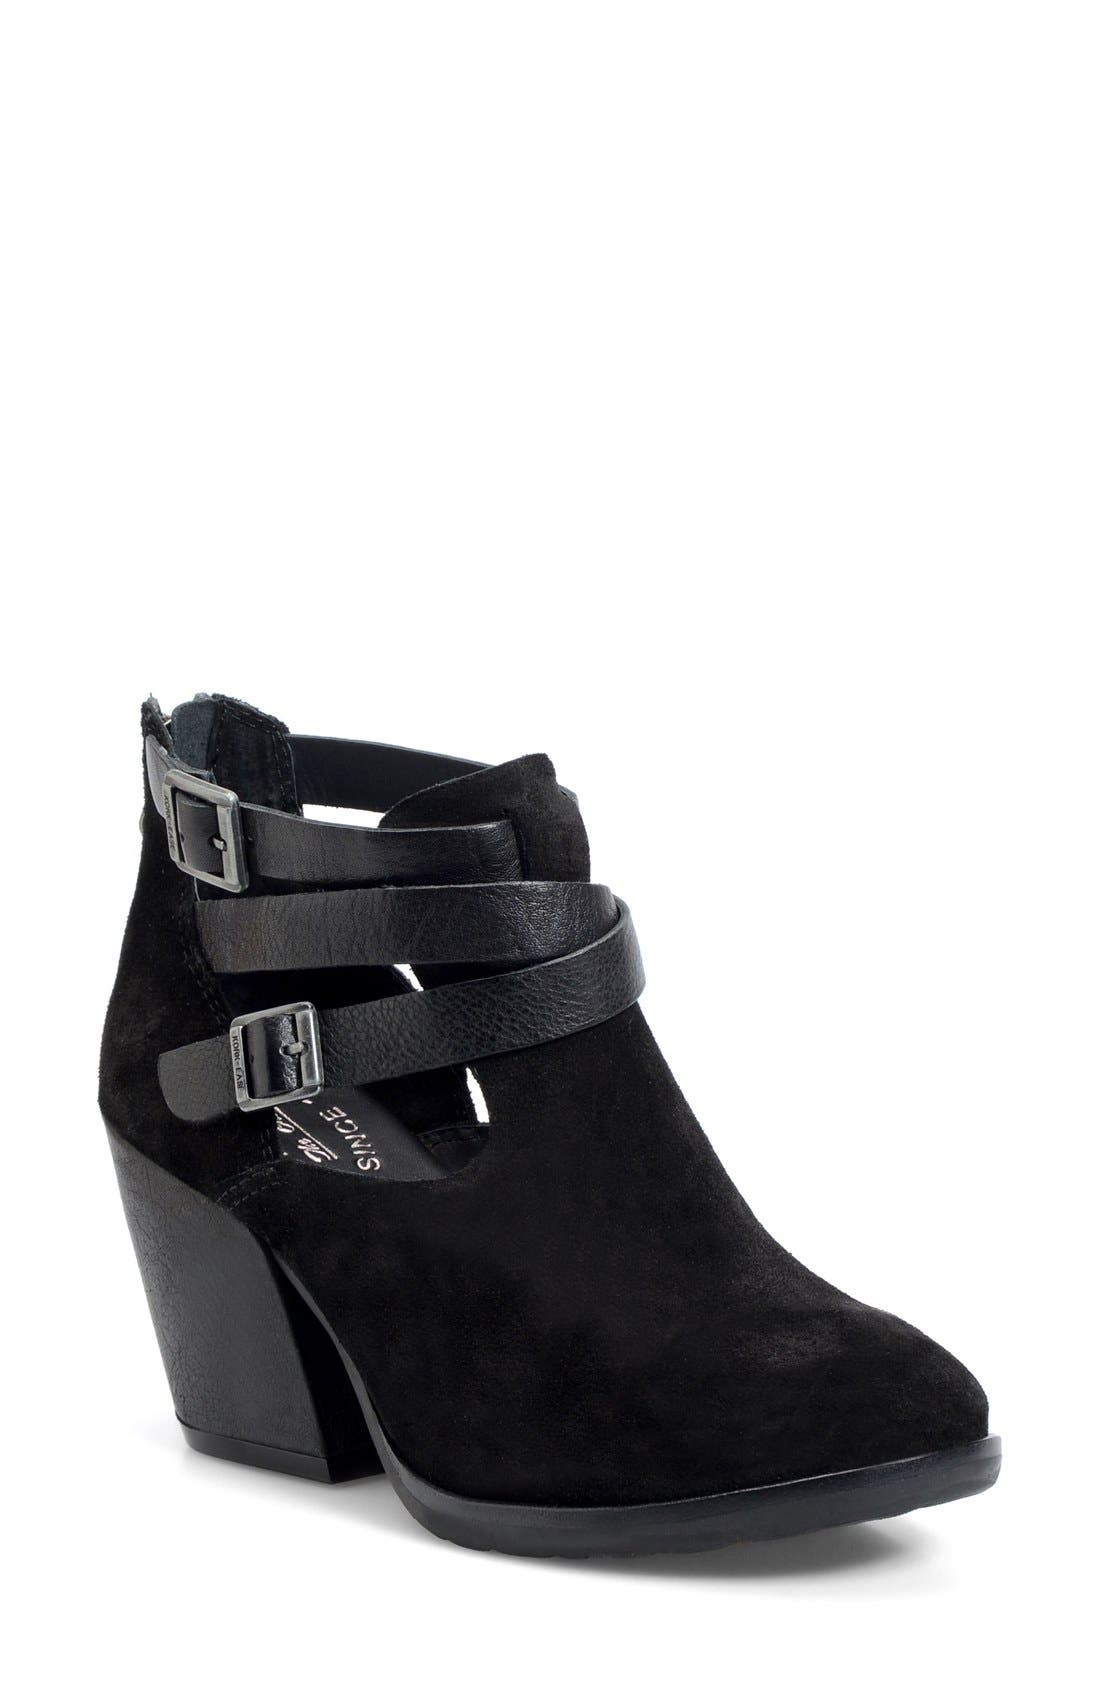 'Stina' Leather Bootie, Main, color, 001